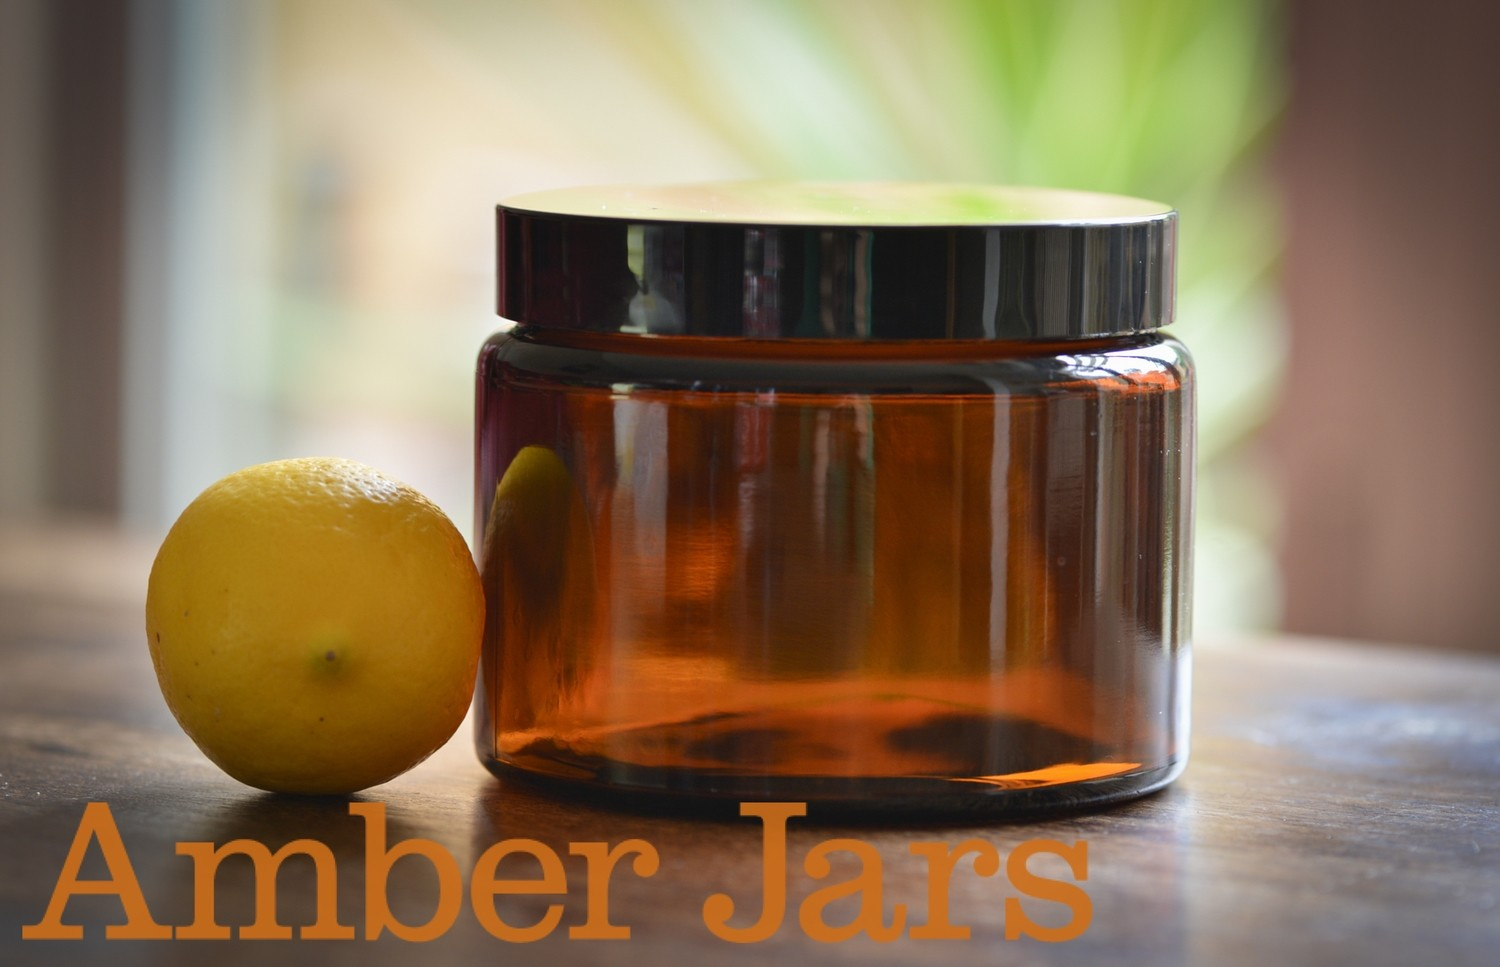 24 x 500ml Glass Amber Jars with Black Wadded Lid.